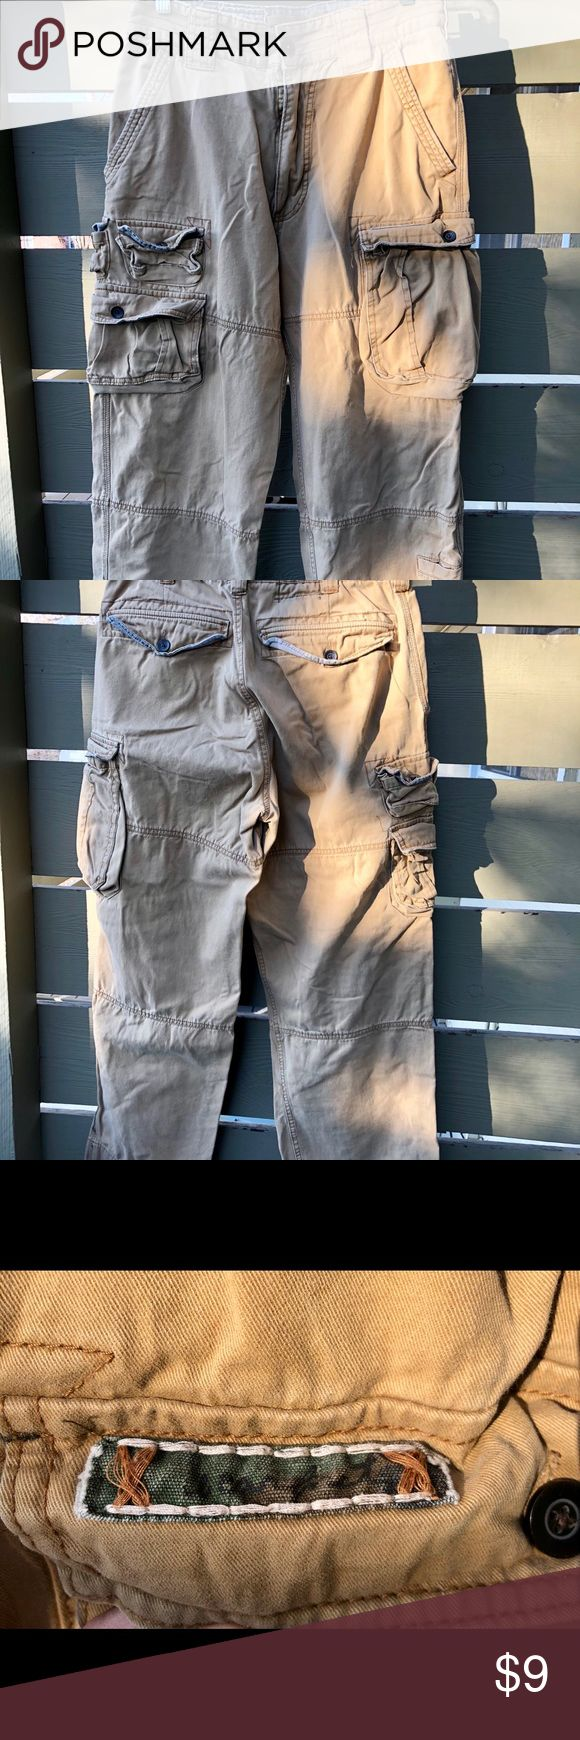 Men's cargo pants Wearfirst Sportswear multipocket utility/cargo pants. Rugged, durable pair for your next adventure. Wearfirst Sportswear Pants Cargo